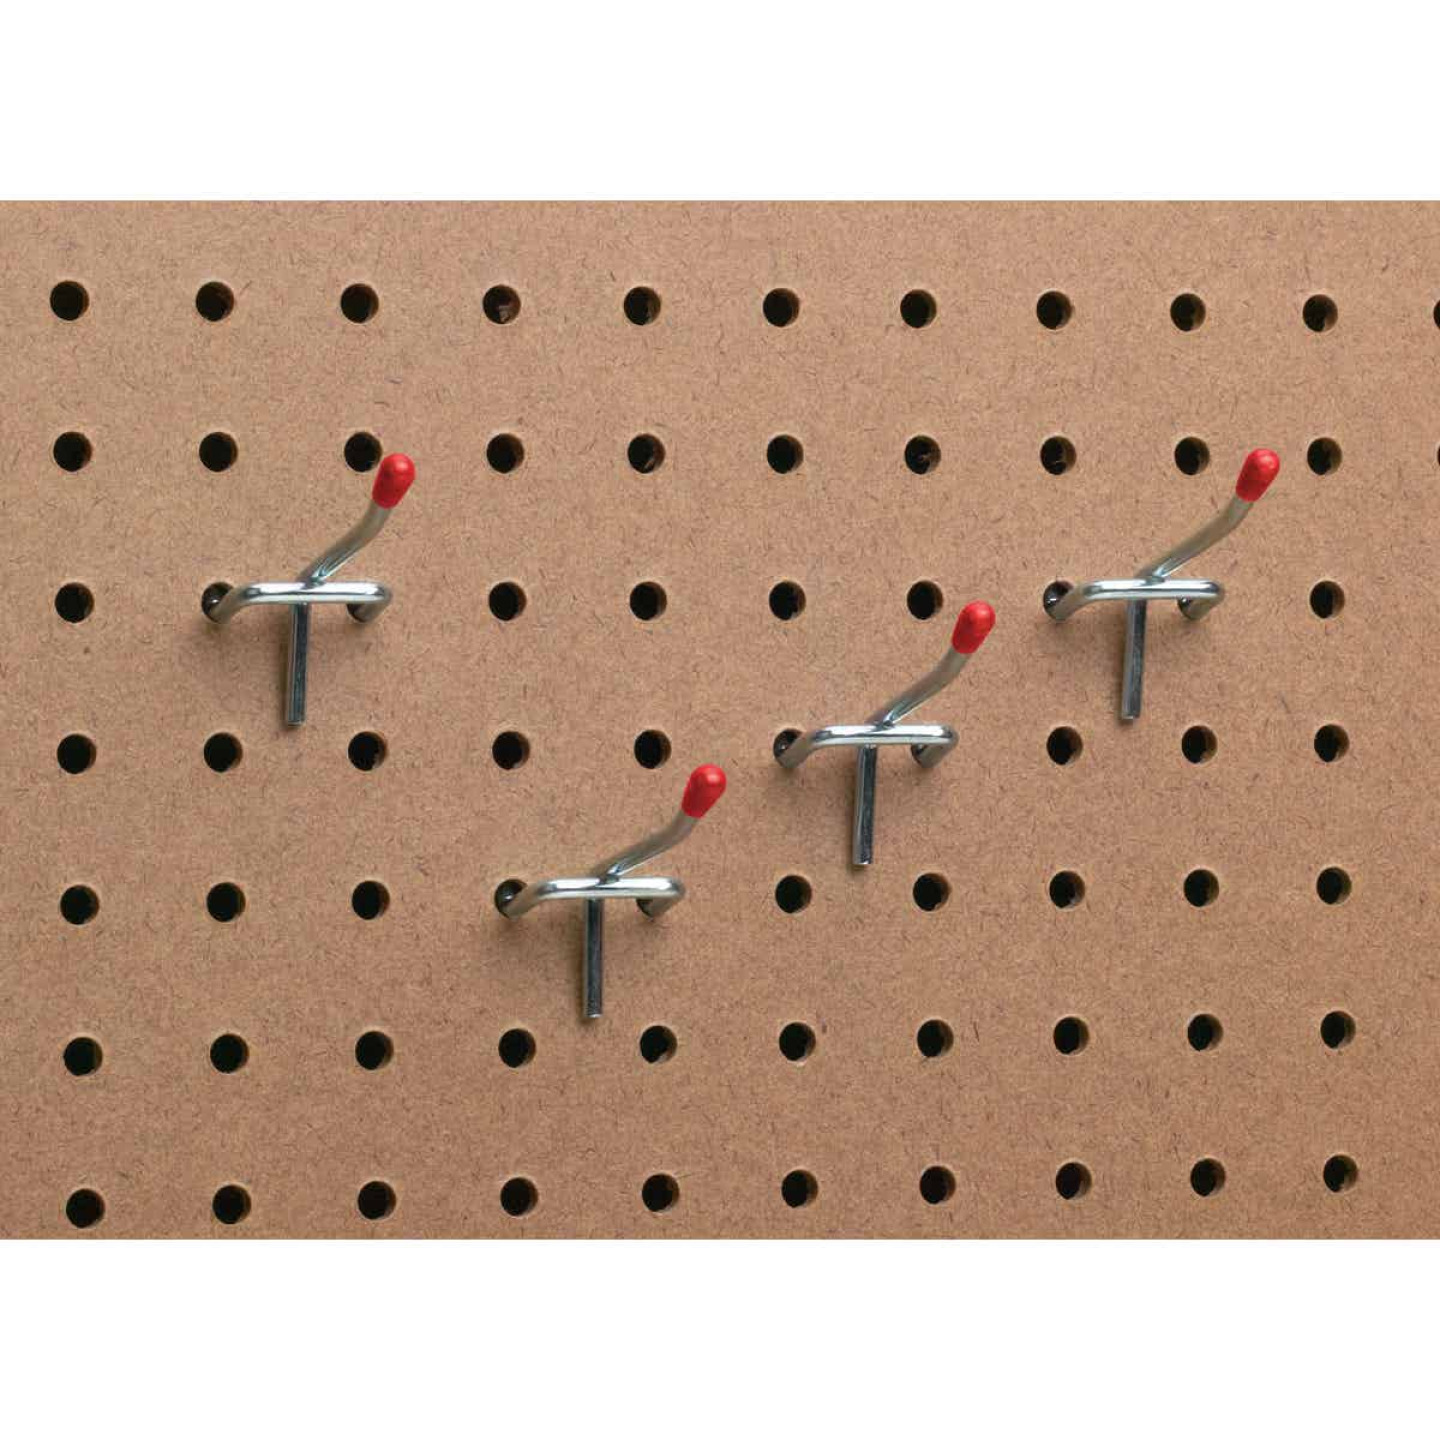 2 In. Light Duty Safety Tip Straight Pegboard Hook (4-Count) Image 3